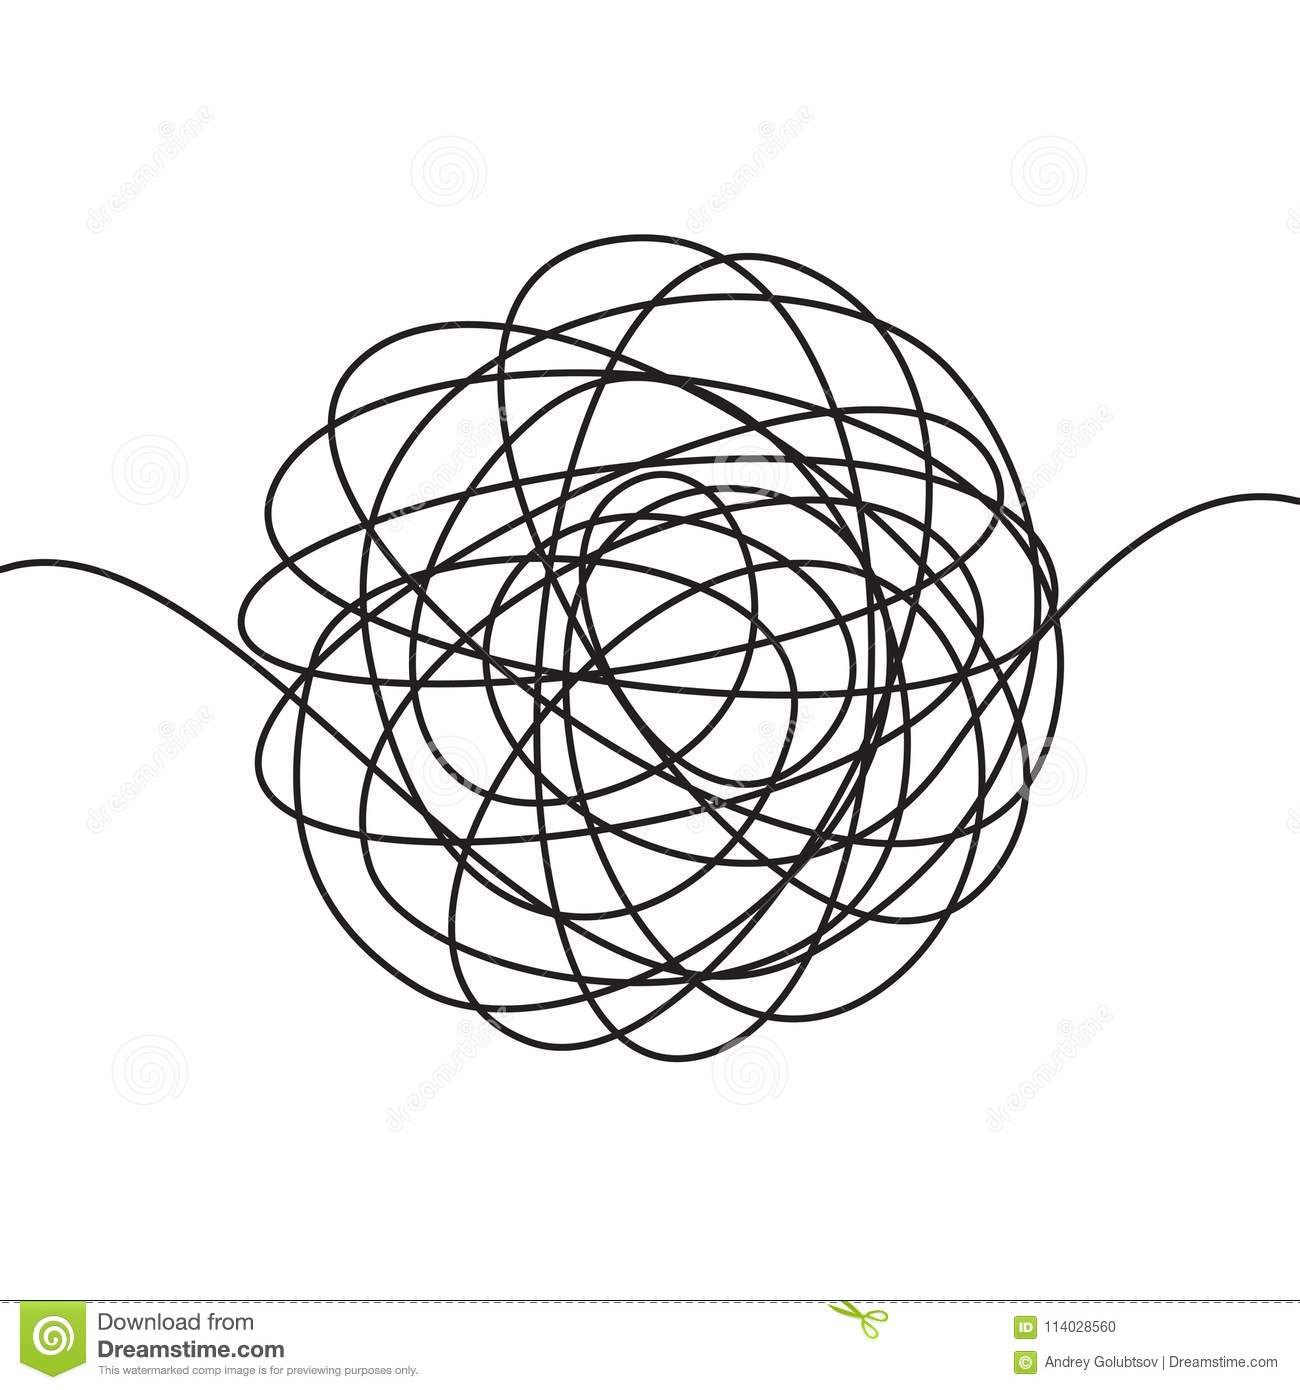 Hand Drawn Scrawl Sketch Or Black Line Spherical Abstract